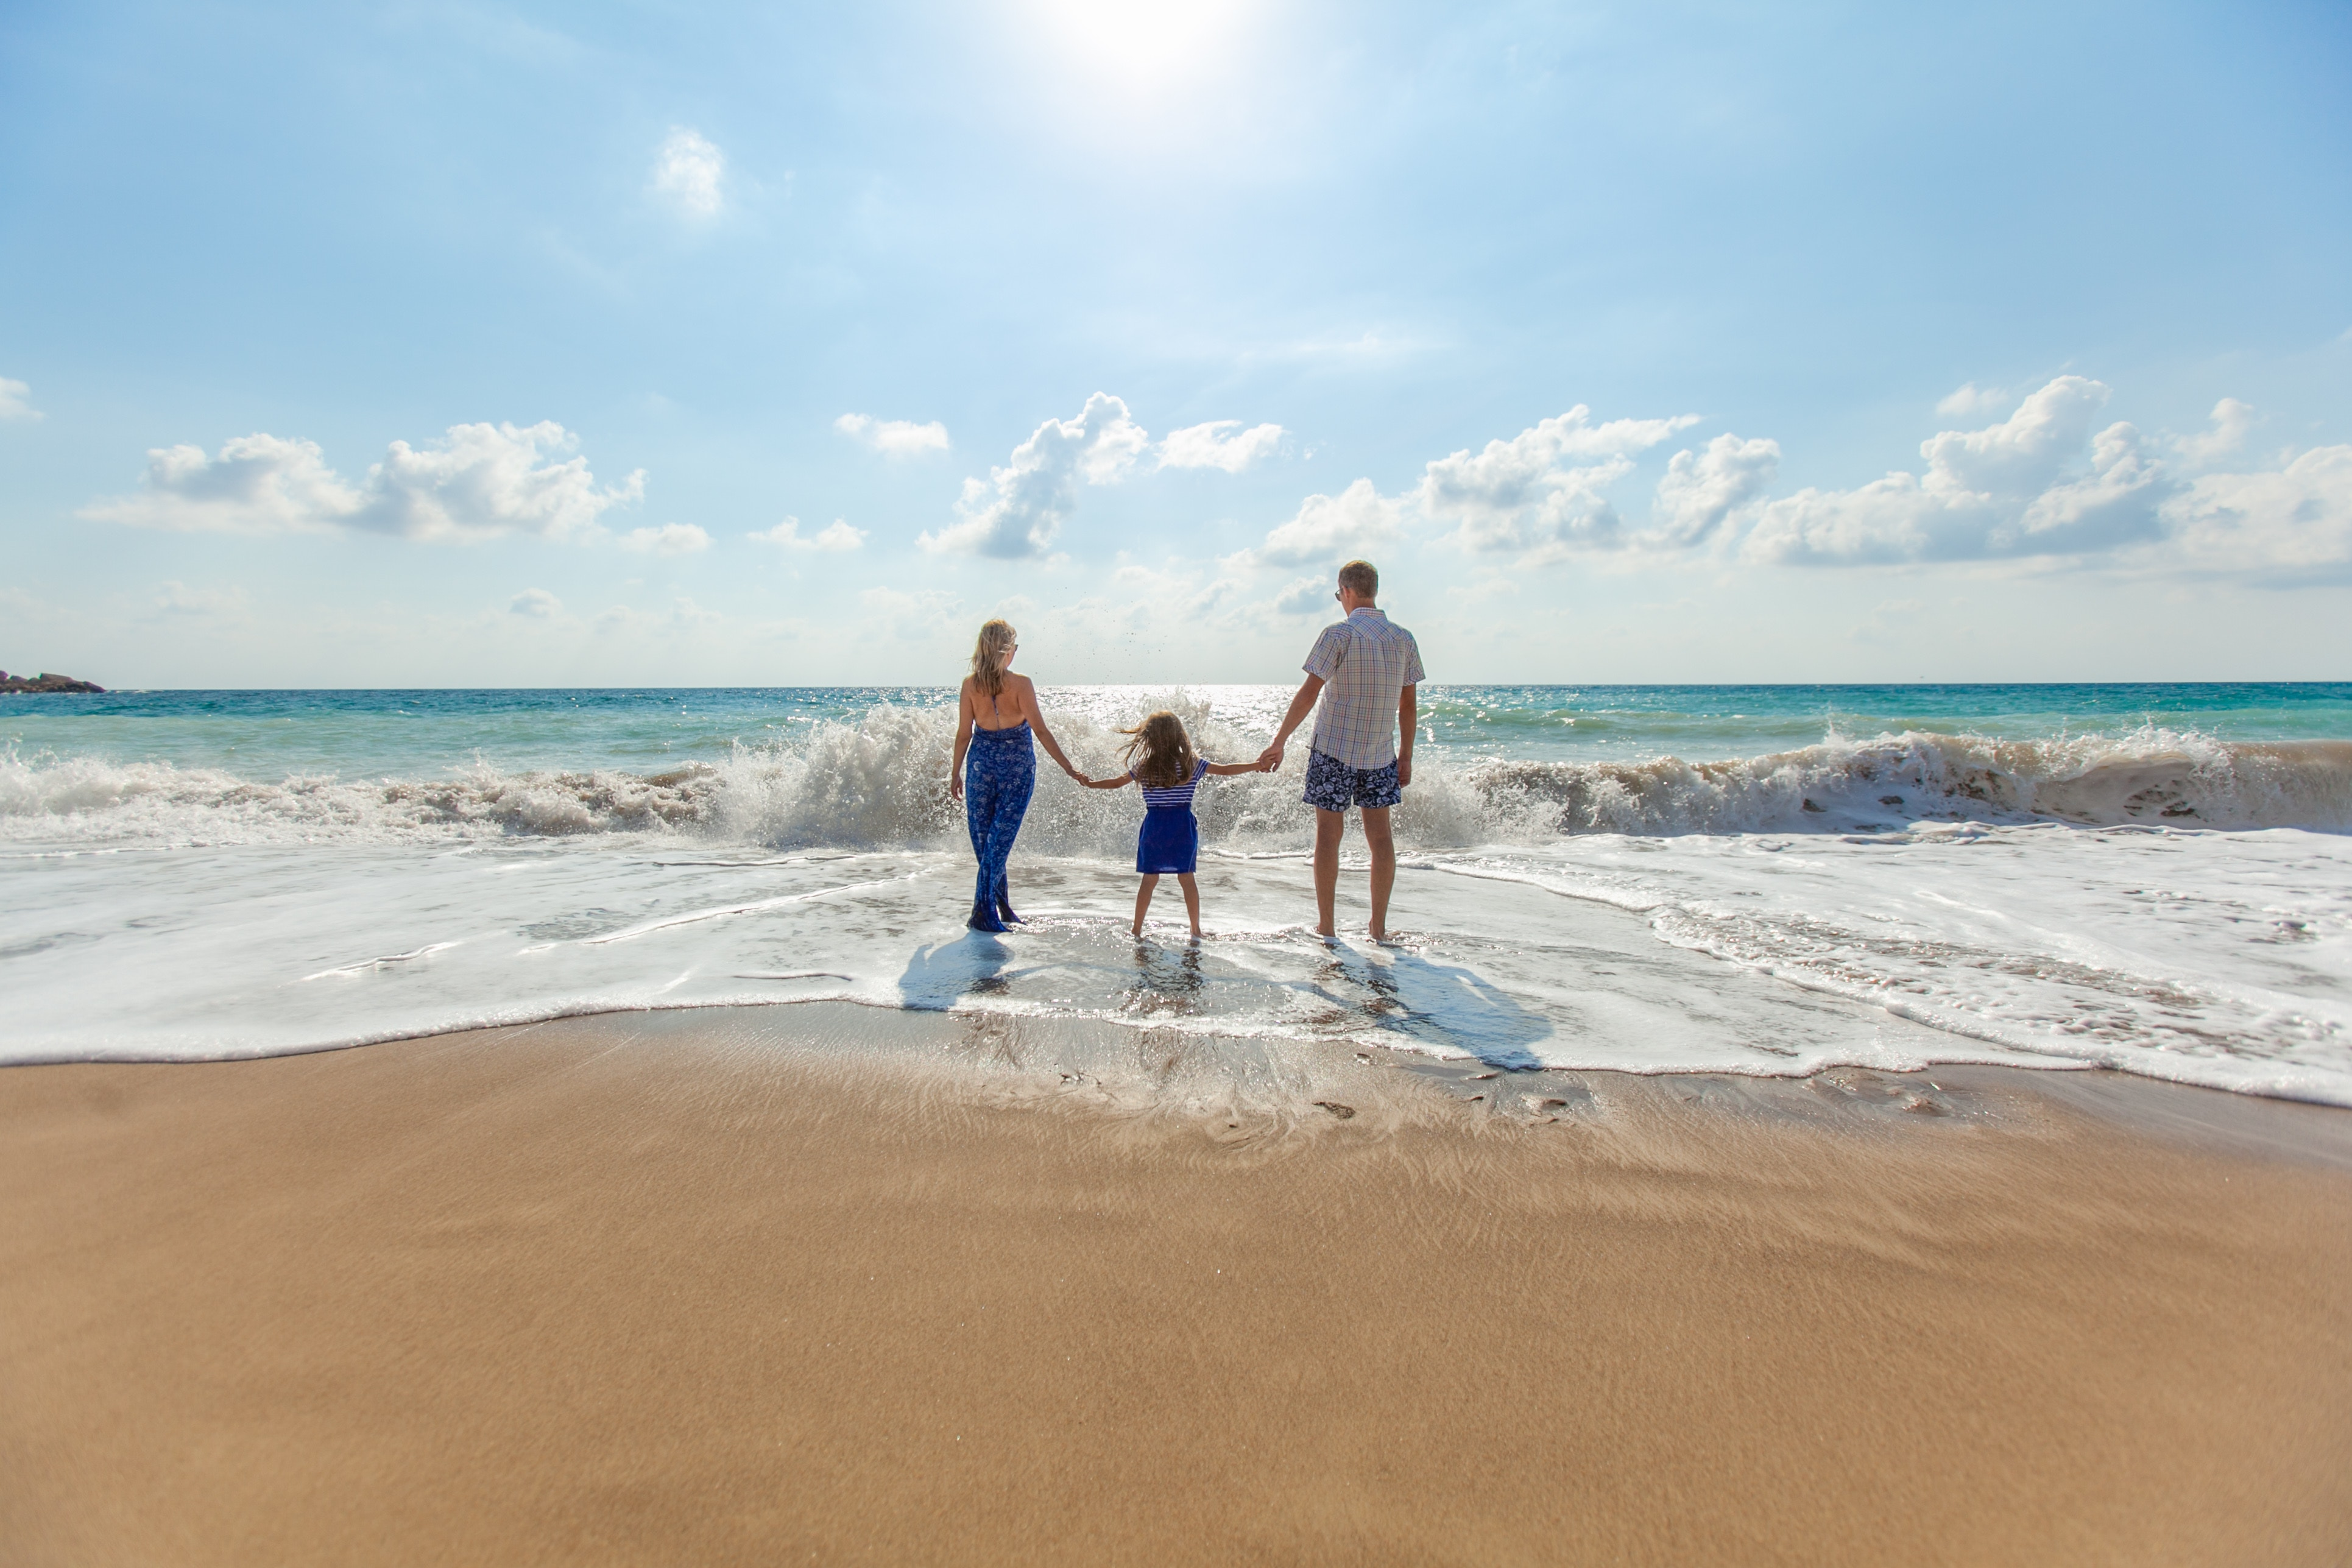 parents, family, beach, ocean, water, mom, dad, kid, child